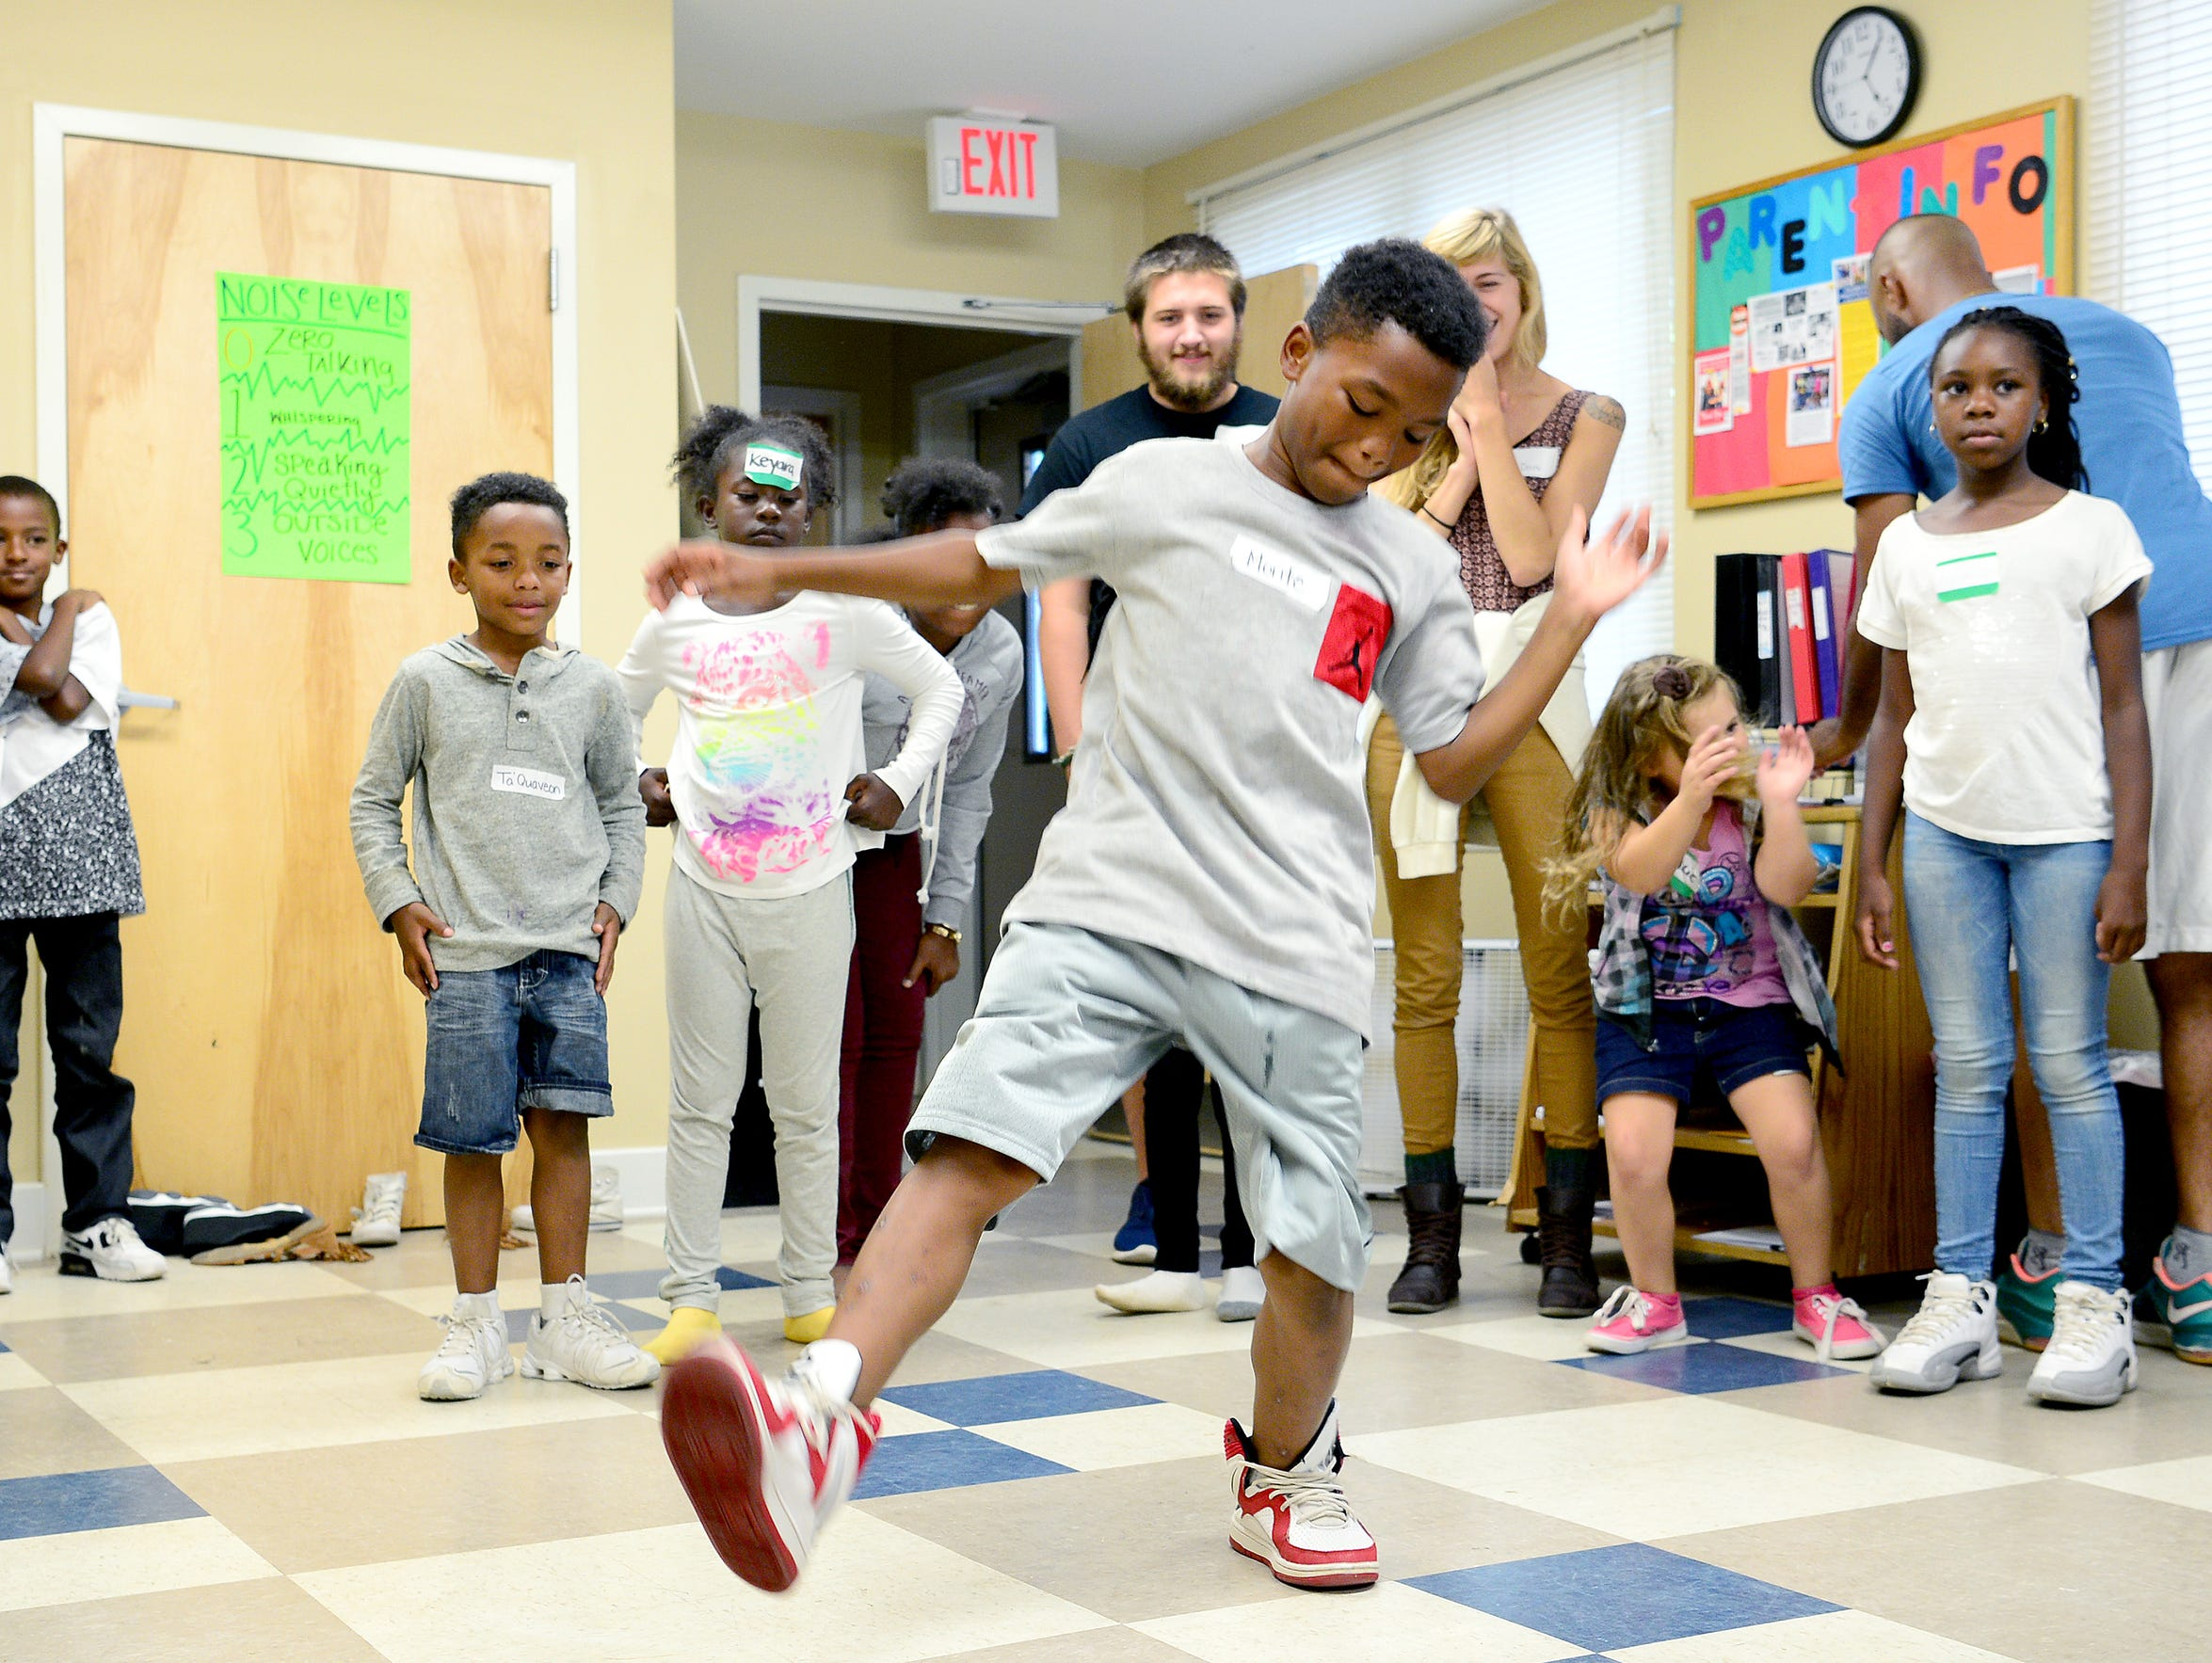 Monte Brooks, 10, shows off his dance moves to other